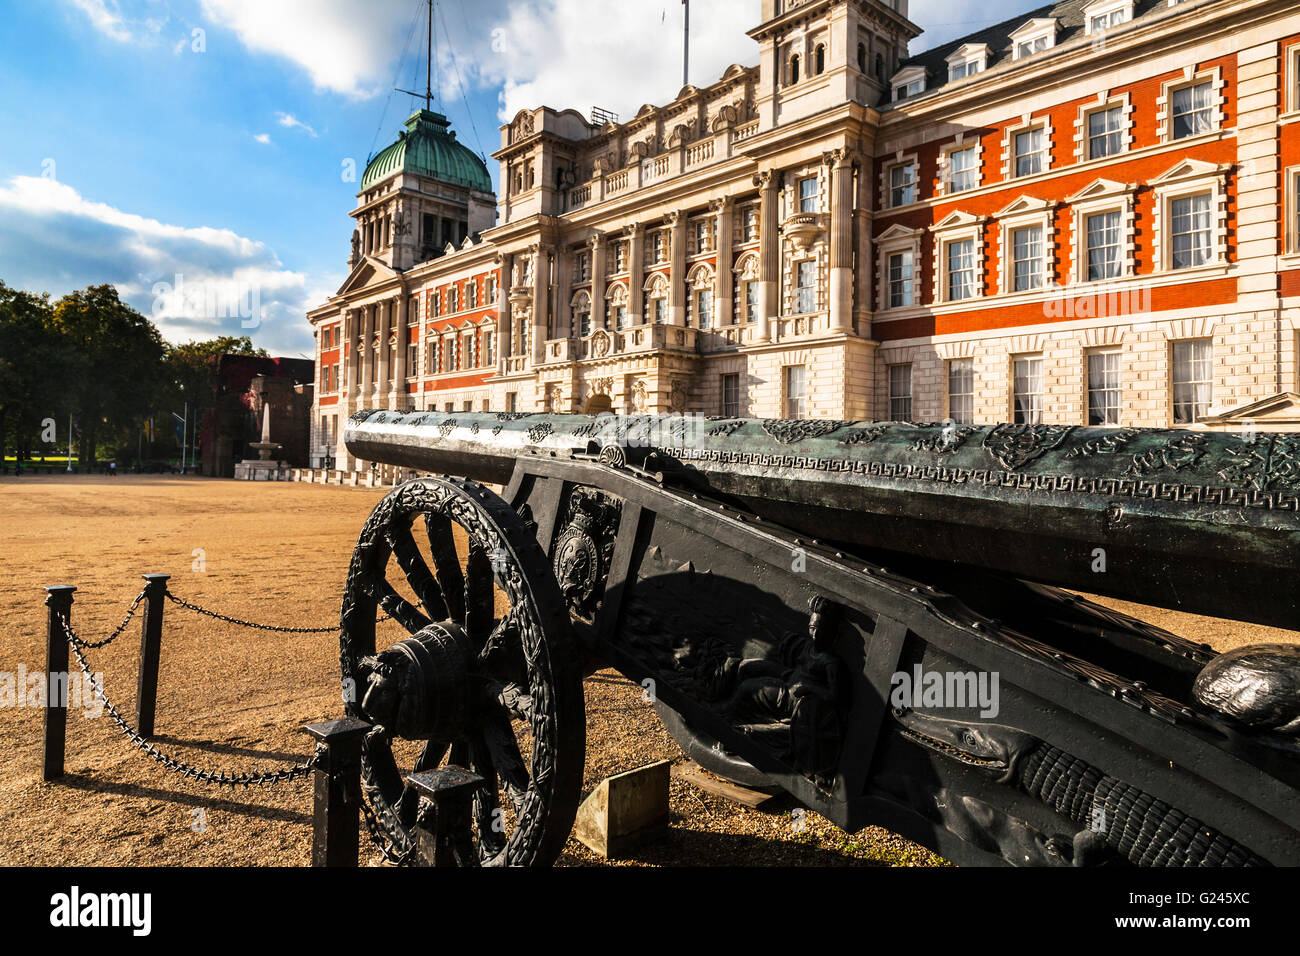 The Ottoman Gun A Captured Turkish Cannon At Horseguards Parade